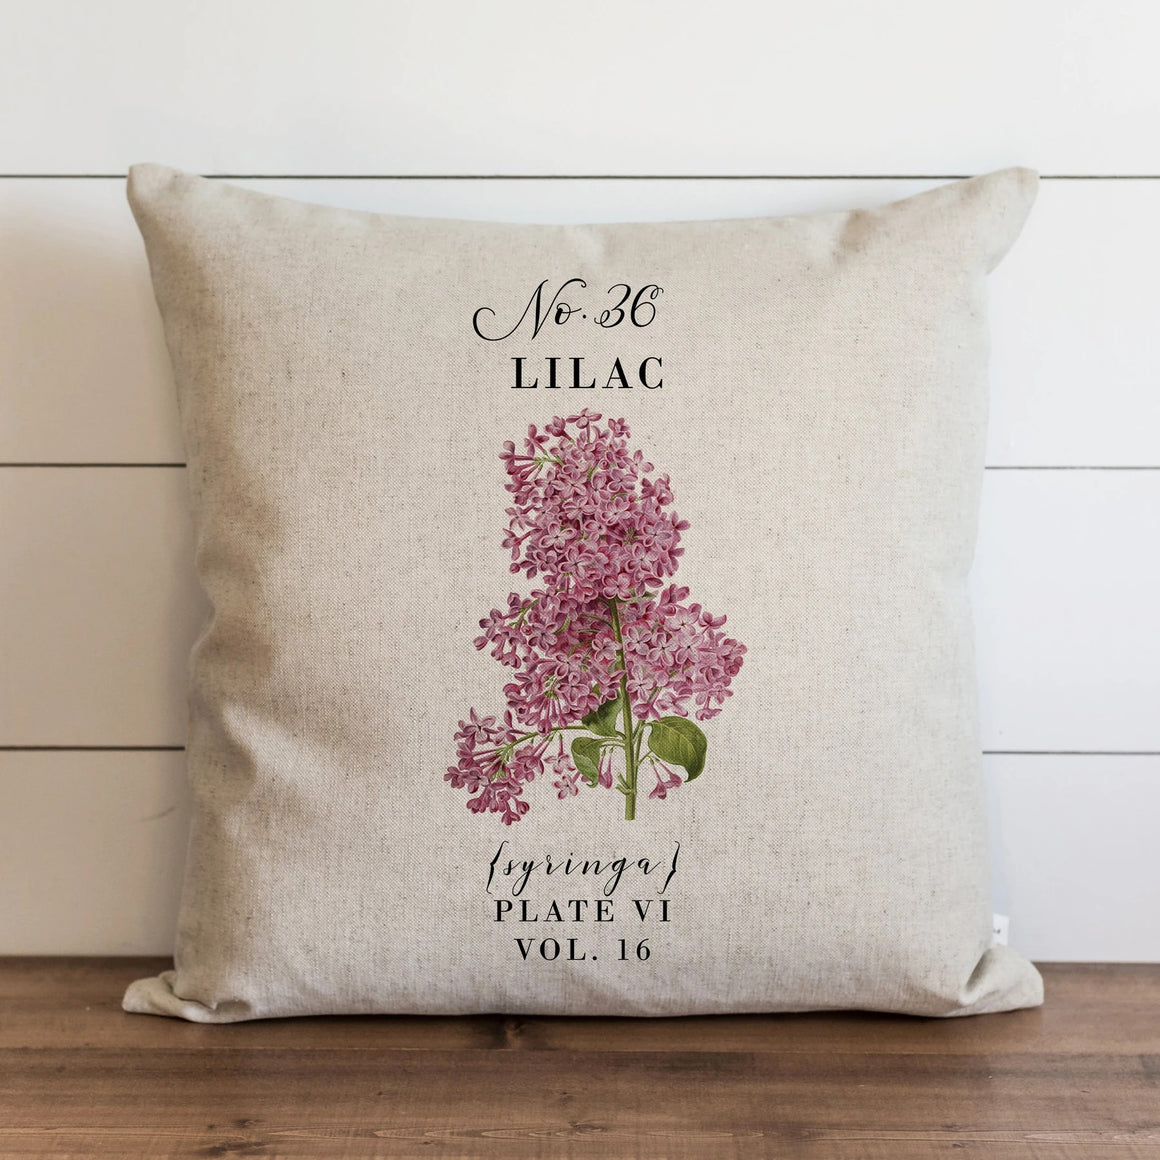 Inspired by vintage botanical illustrations, this Lilac Pillow Cover brings graceful, fresh and elegant style to your farmhouse. Custom designed and handcrafted in the USA from the highest quality materials. The warm oatmeal cotton/linen blend adds rustic, elegance to any room. Made in the USA